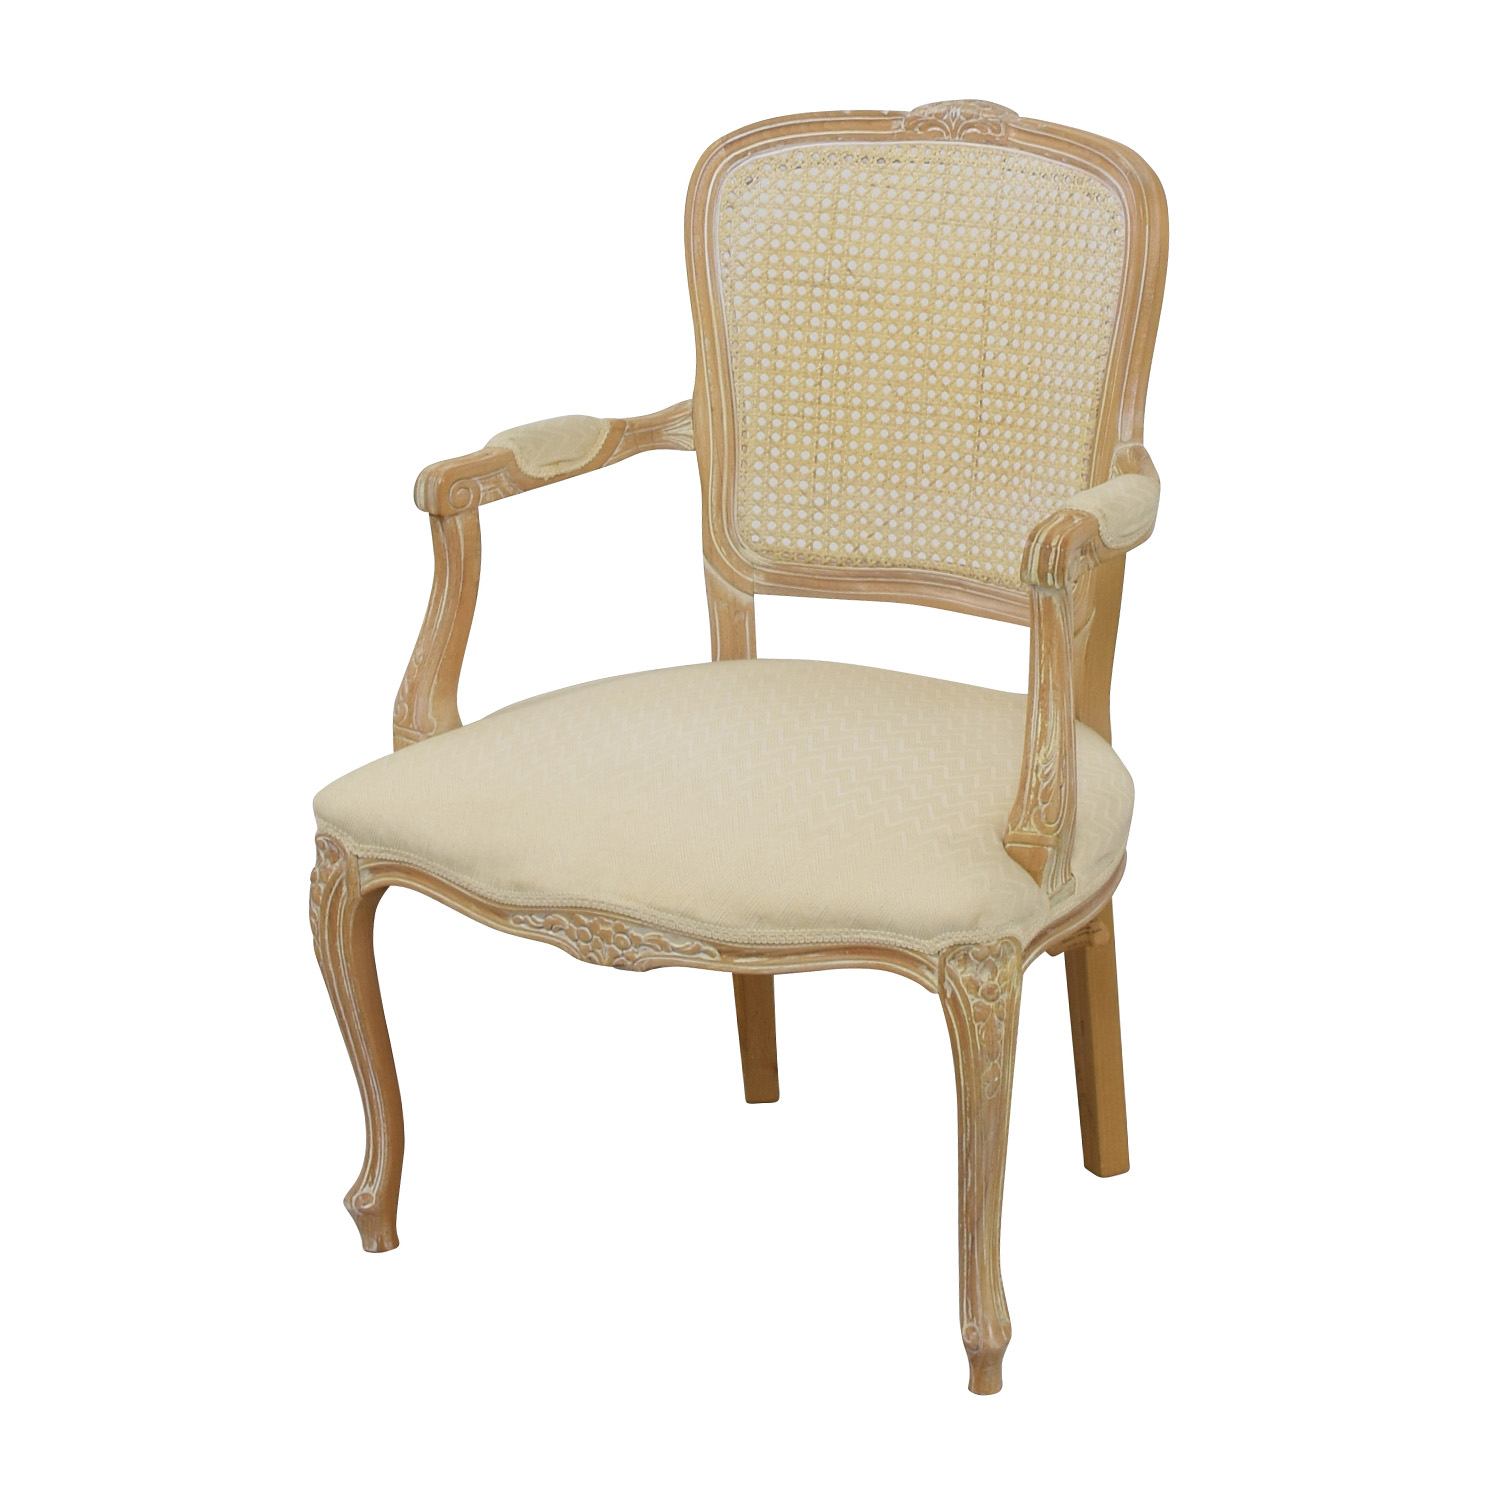 68 off link taylor link taylor french provincial creme chair chairs. Black Bedroom Furniture Sets. Home Design Ideas